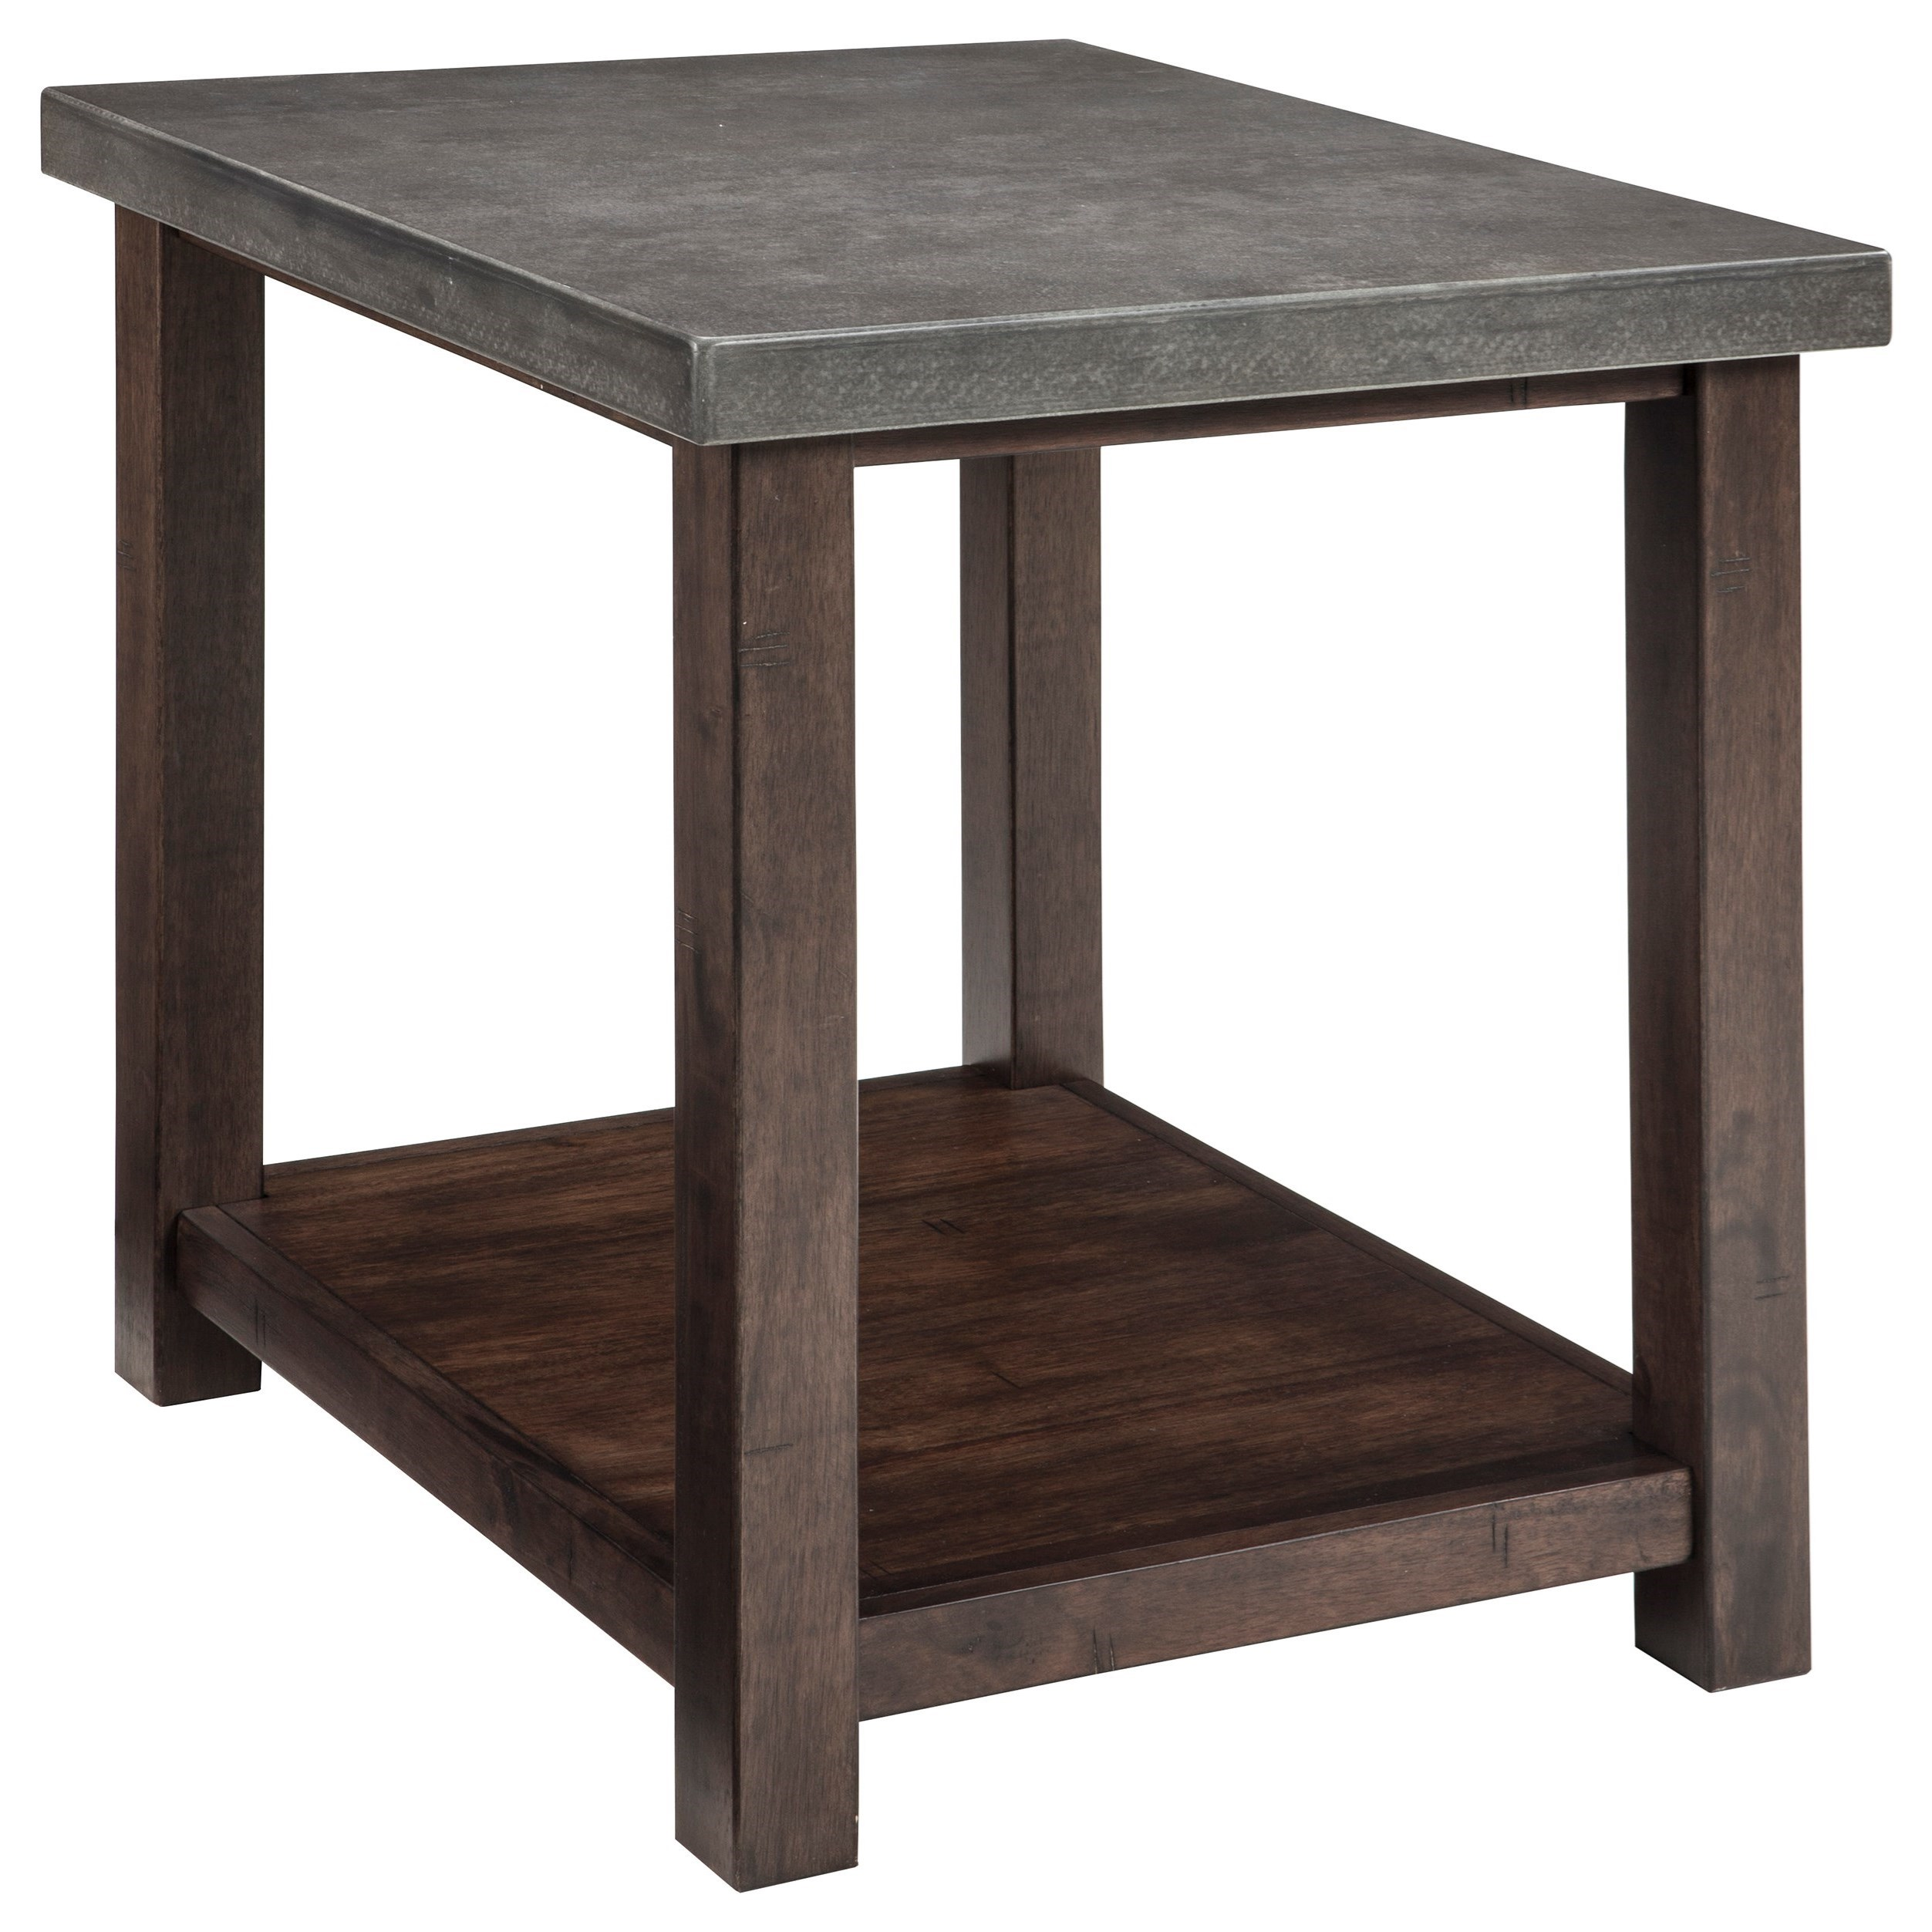 Signature Design by Ashley Starmore Chair Side End Table - Item Number: T913-7